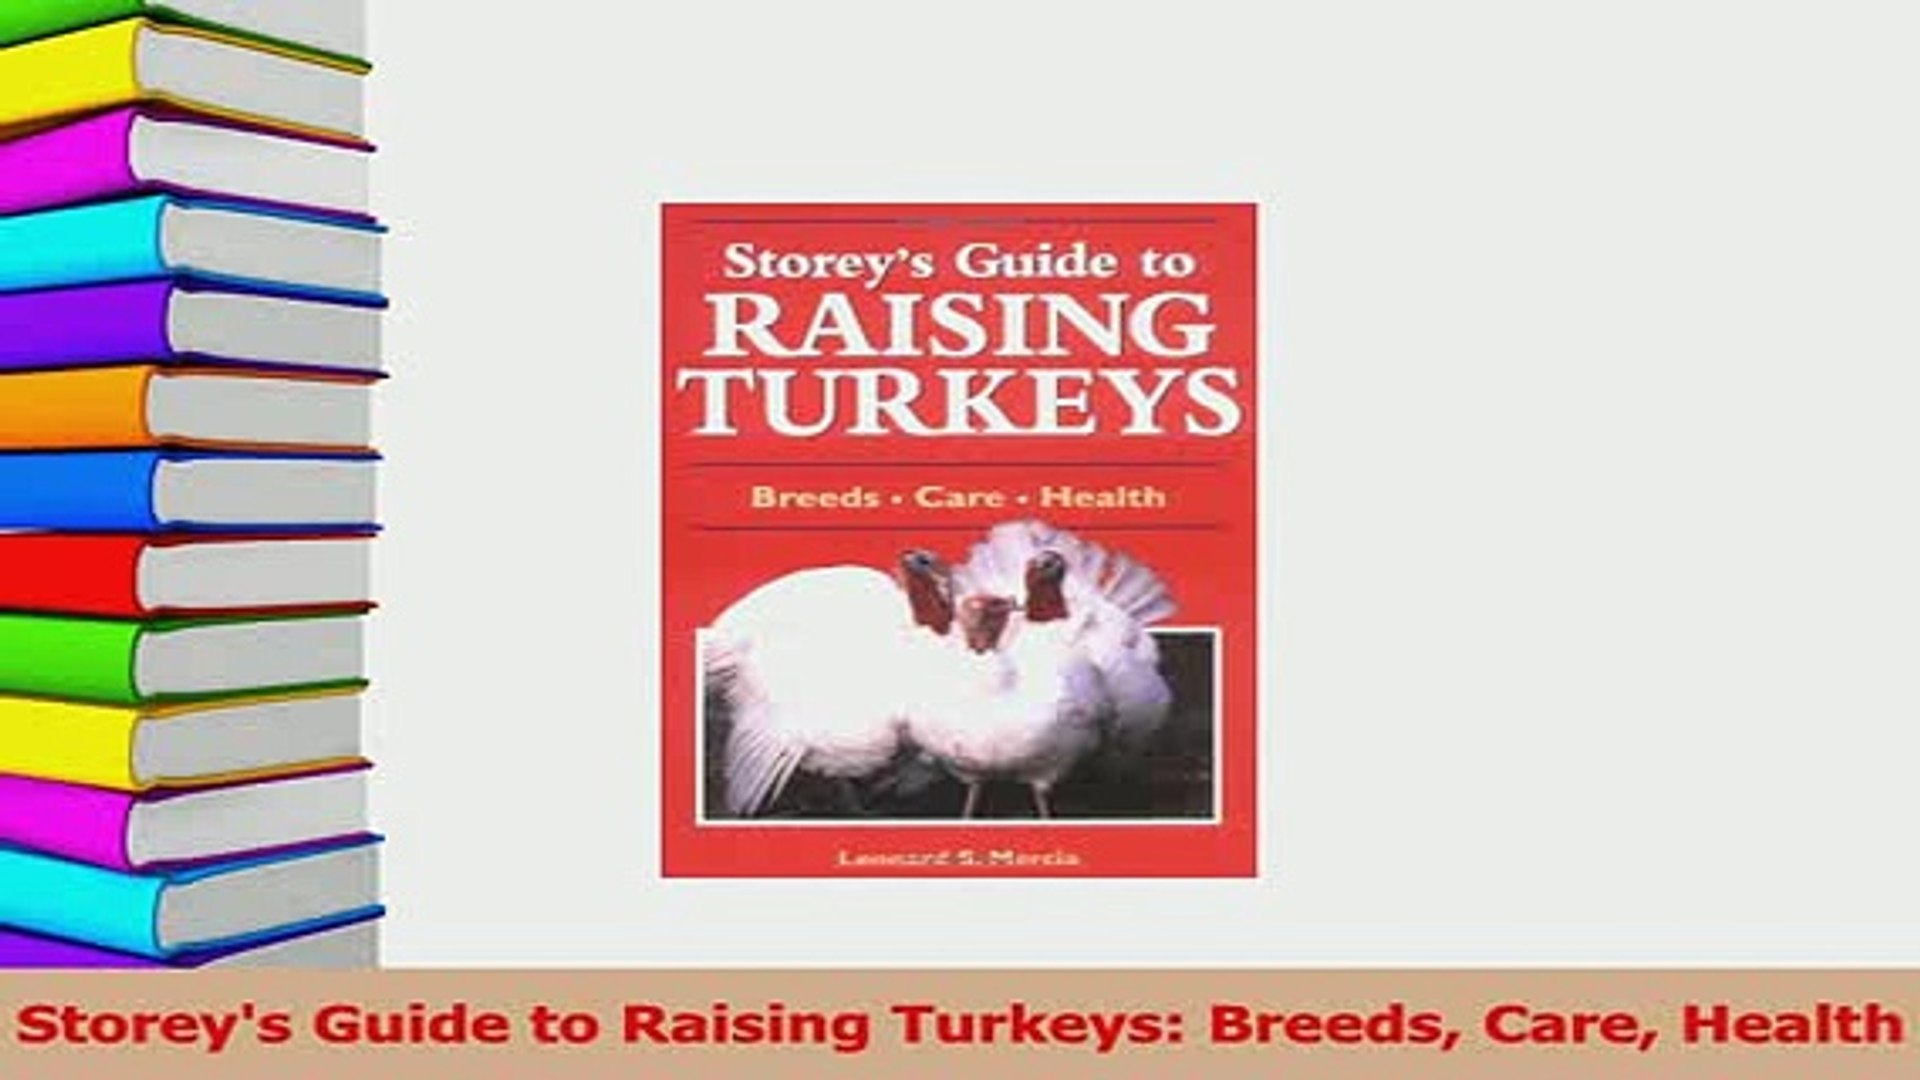 Storeys Guide to Raising Turkeys: Breeds, Care, Health